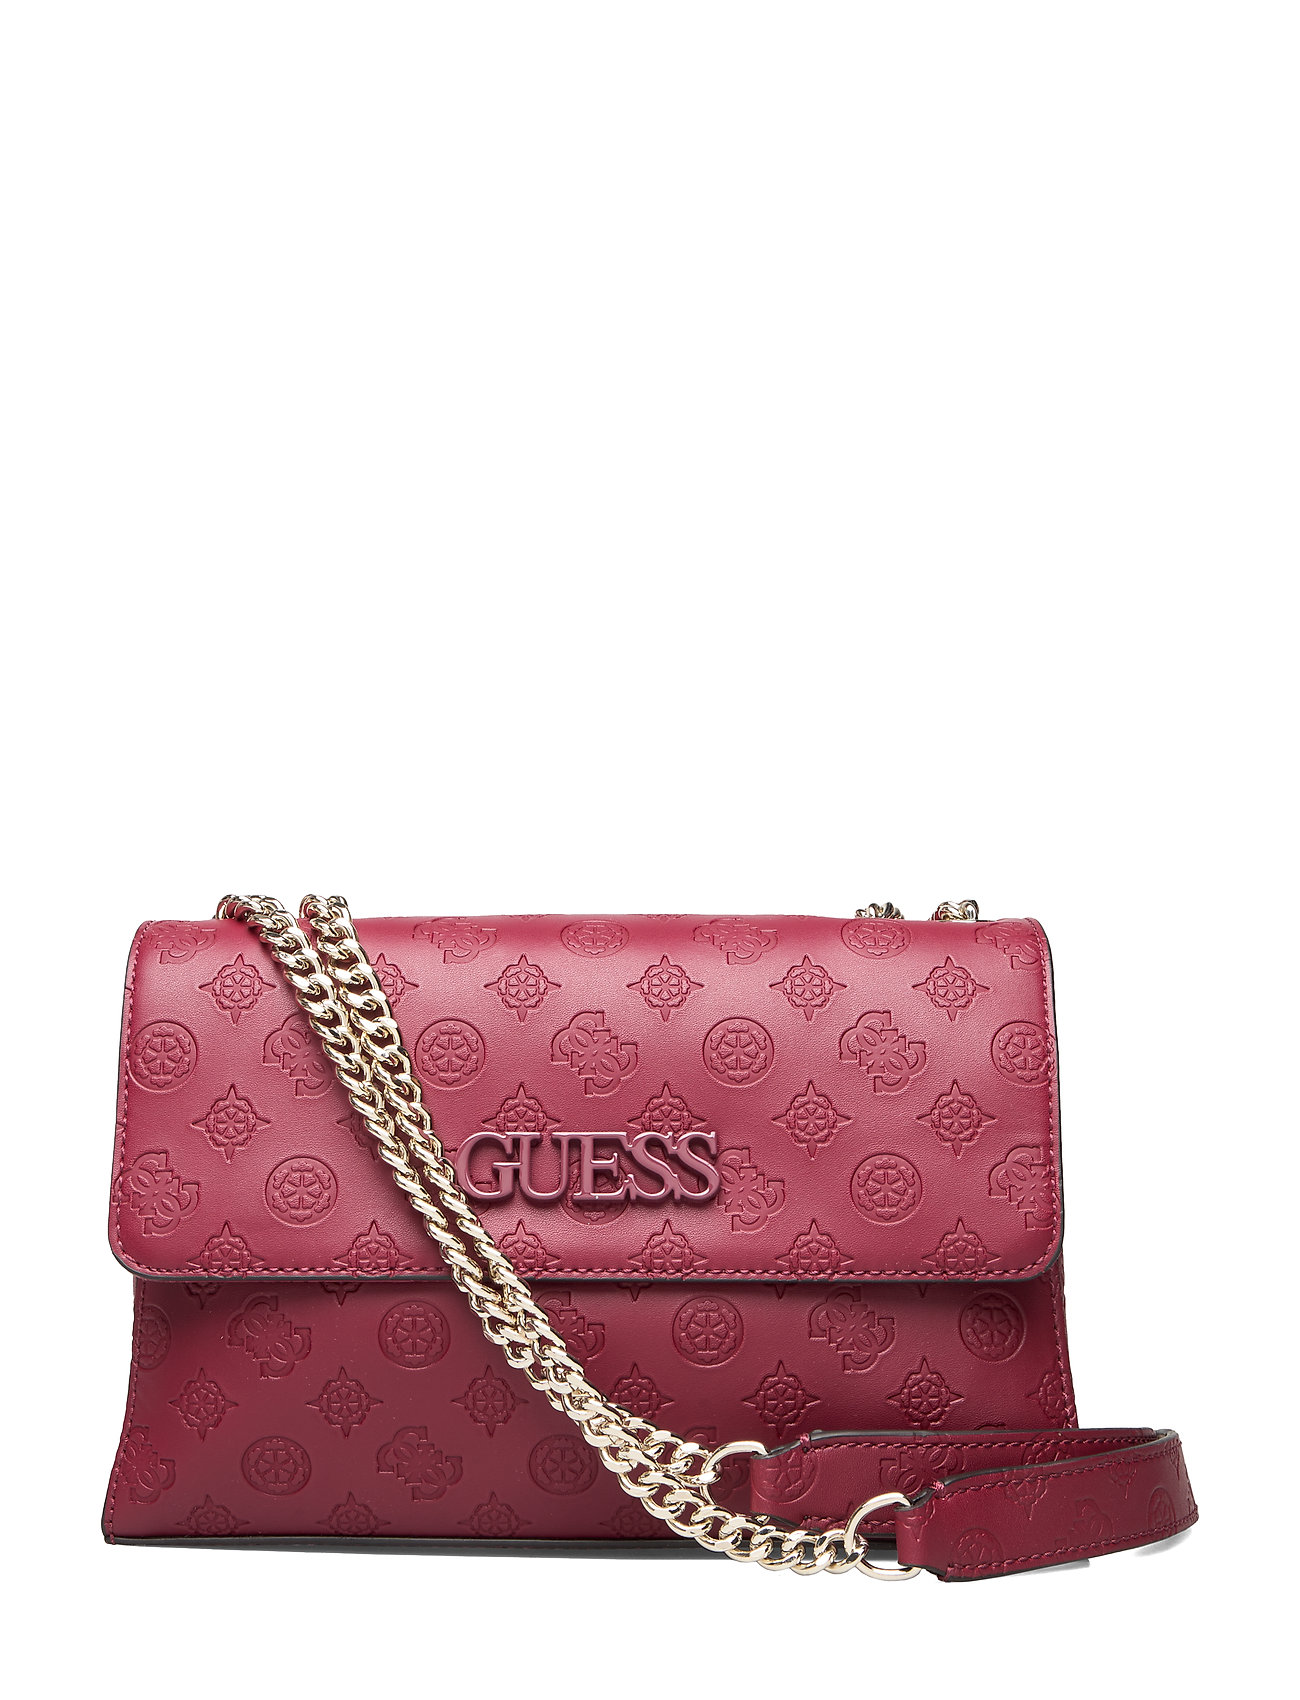 GUESS Janelle Convertible Xbody Flap Bags Small Shoulder Bags/crossbody Bags GUESS